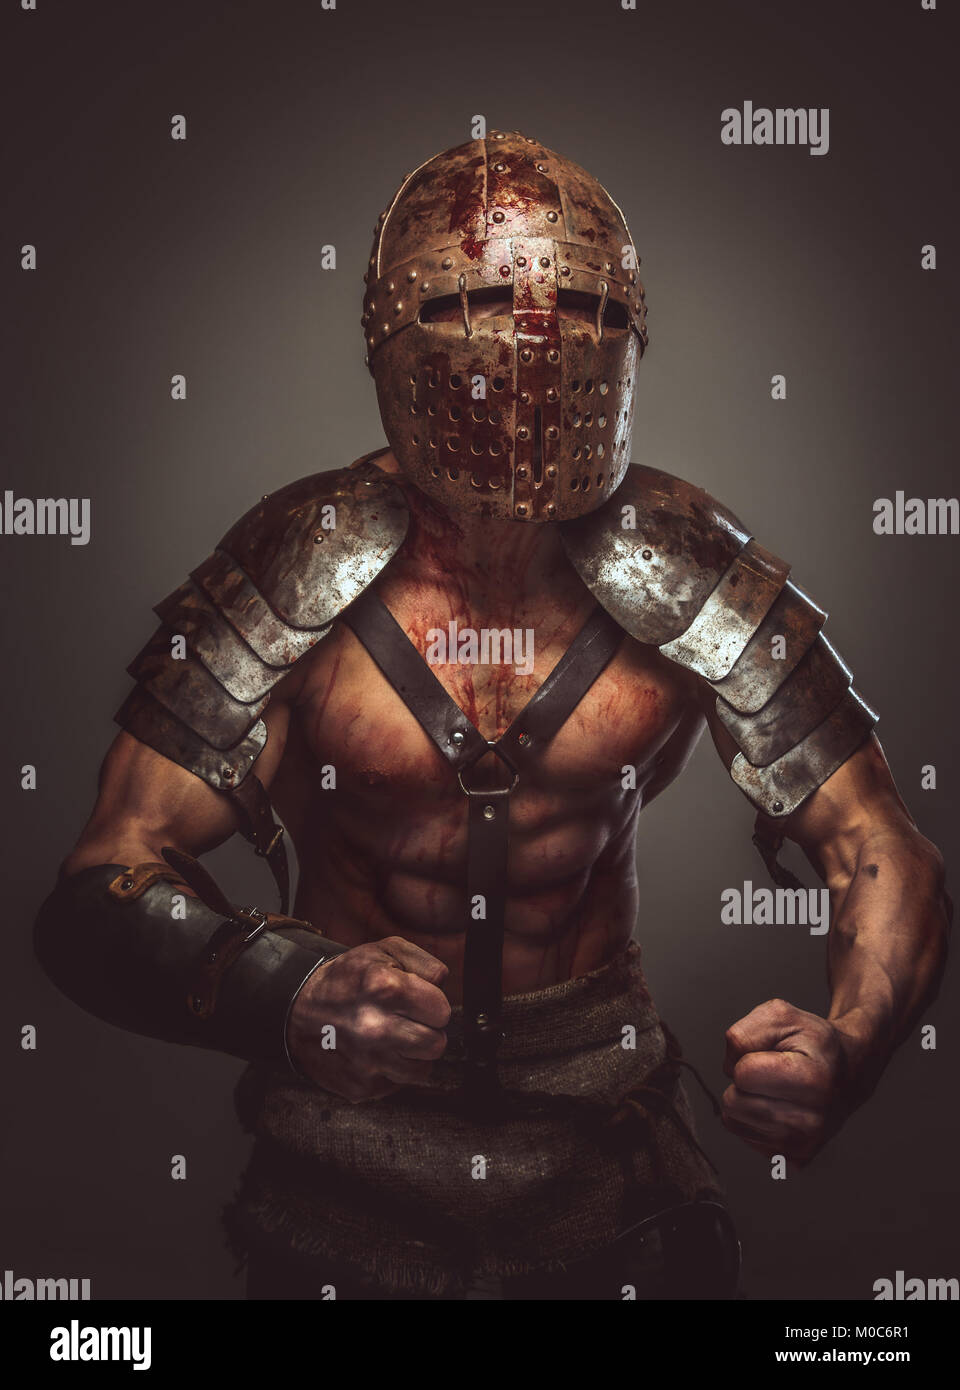 Angry bloody gladiator in helmet and ancient armor. - Stock Image